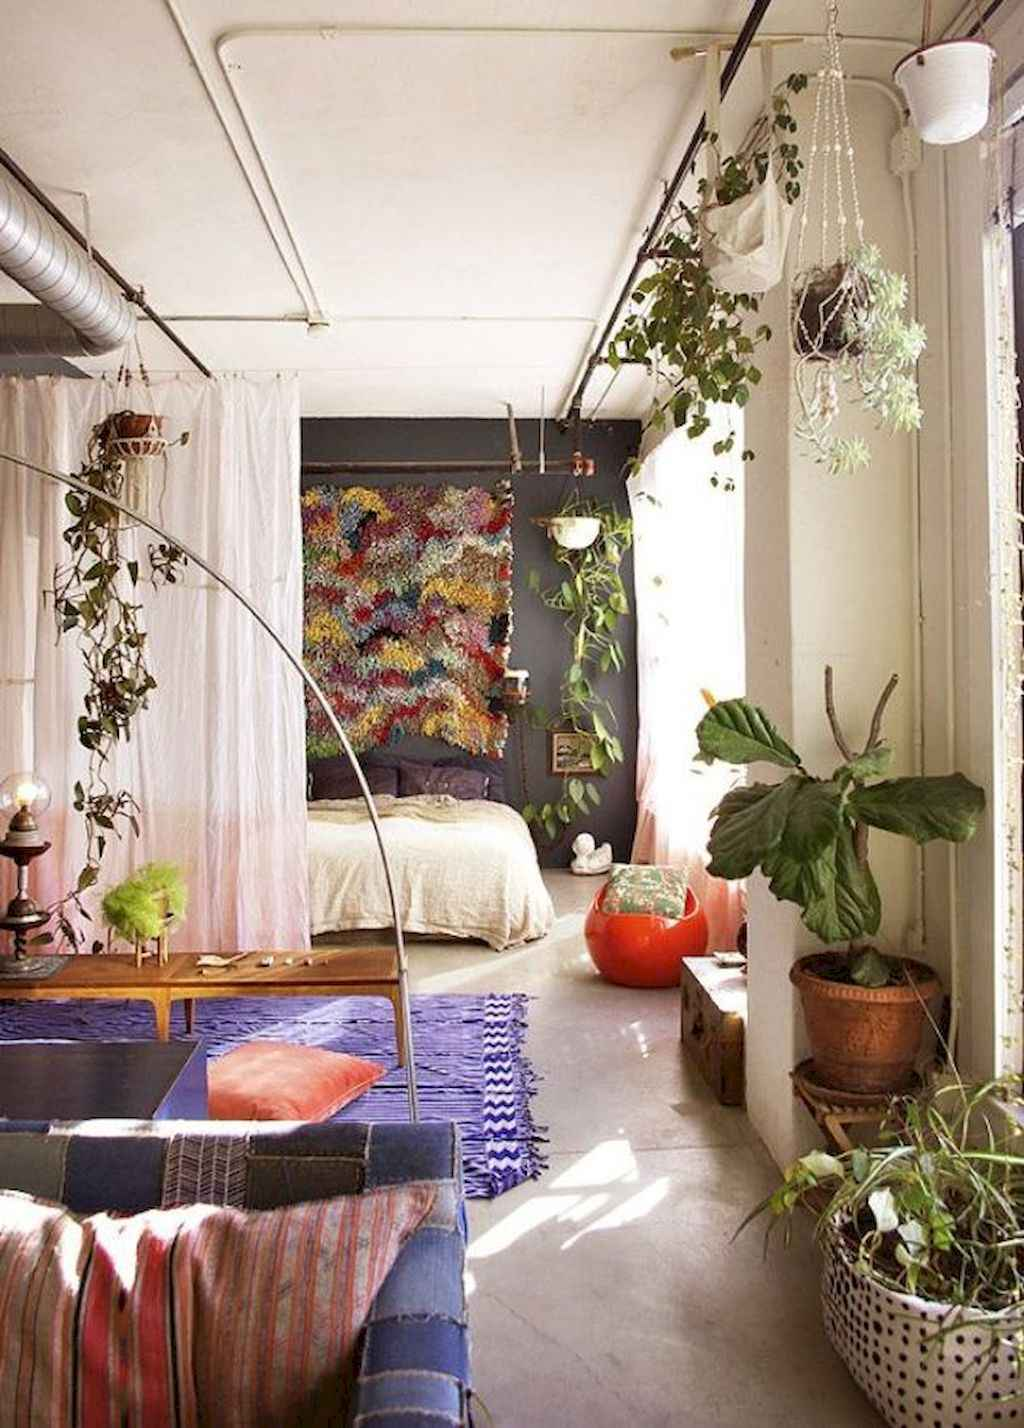 Cool small apartment decorating ideas on a budget (9)